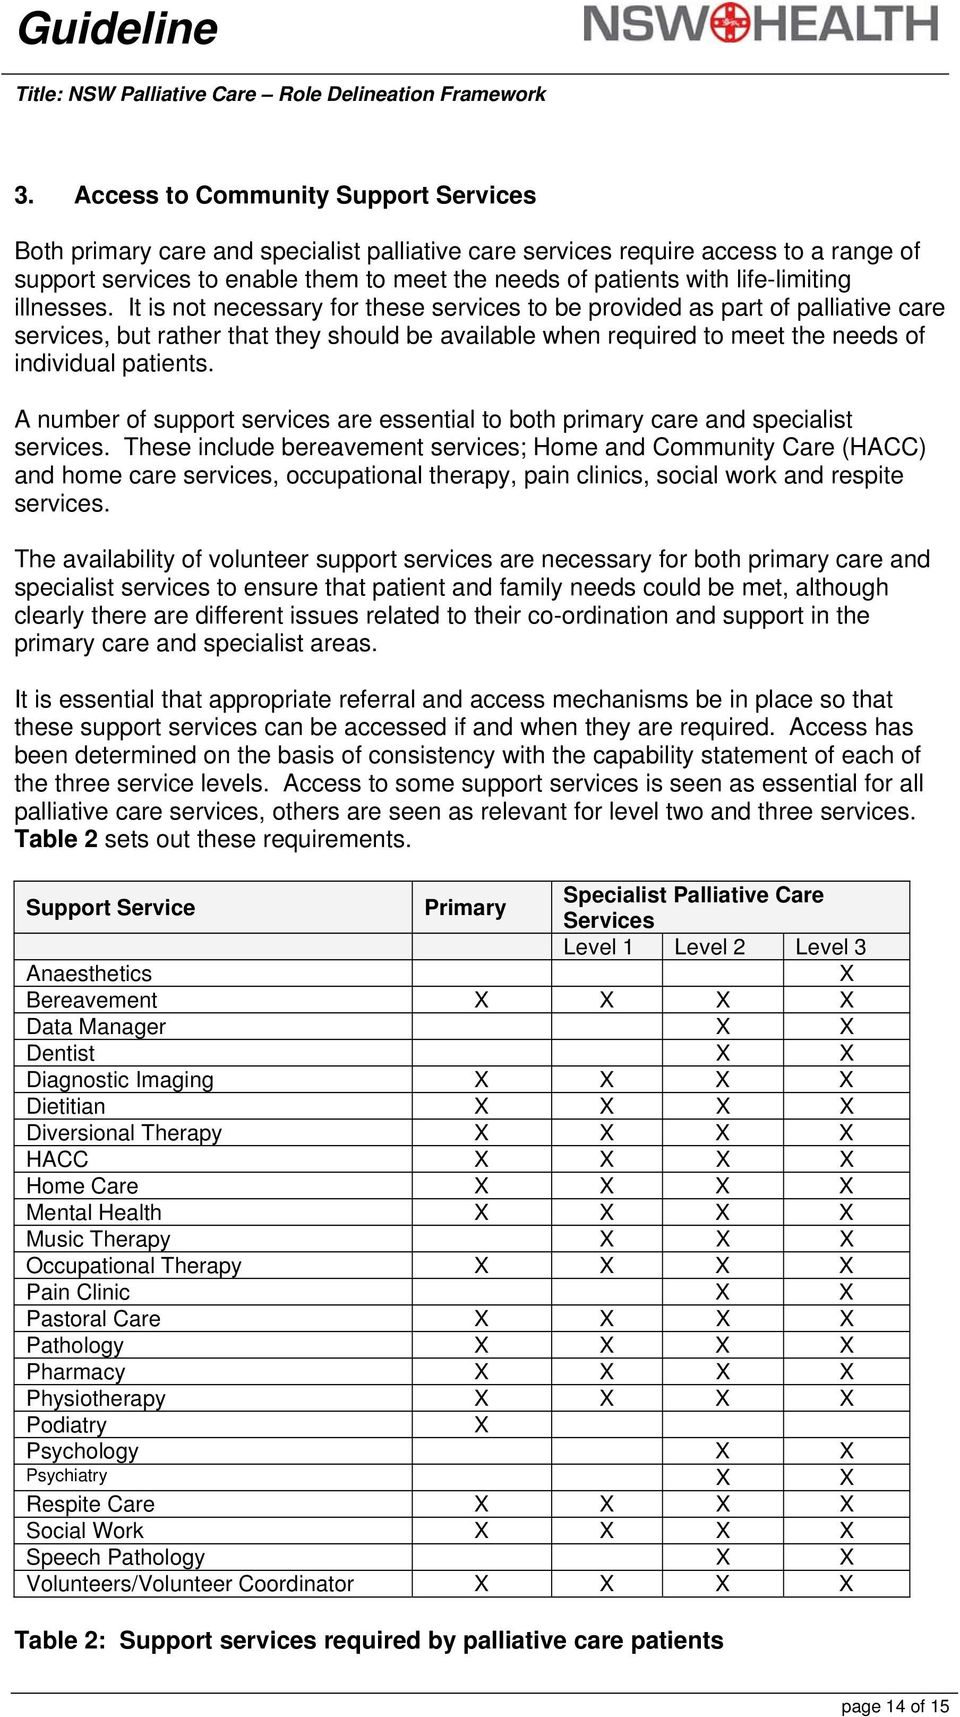 It is not necessary for these services to be provided as part of palliative care services, but rather that they should be available when required to meet the needs of individual patients.